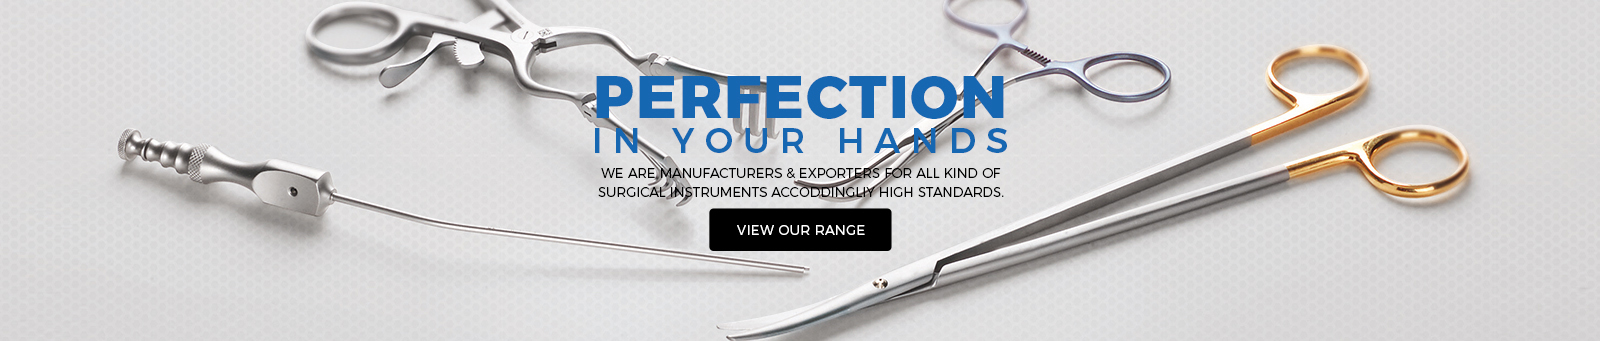 Beauty Instruments   RKZ-surgical